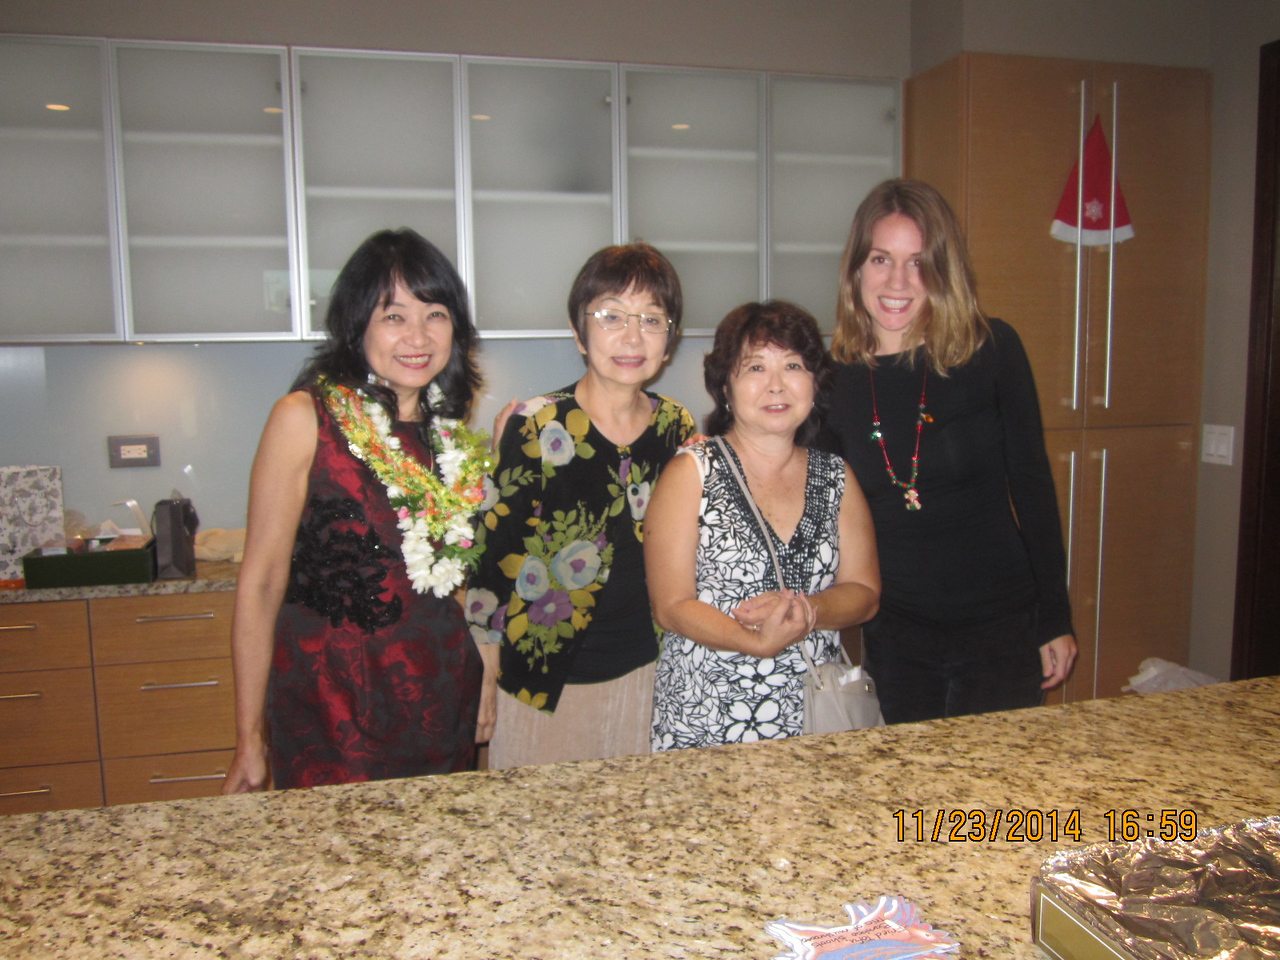 Linda with hostess Kathy and 2 assitants